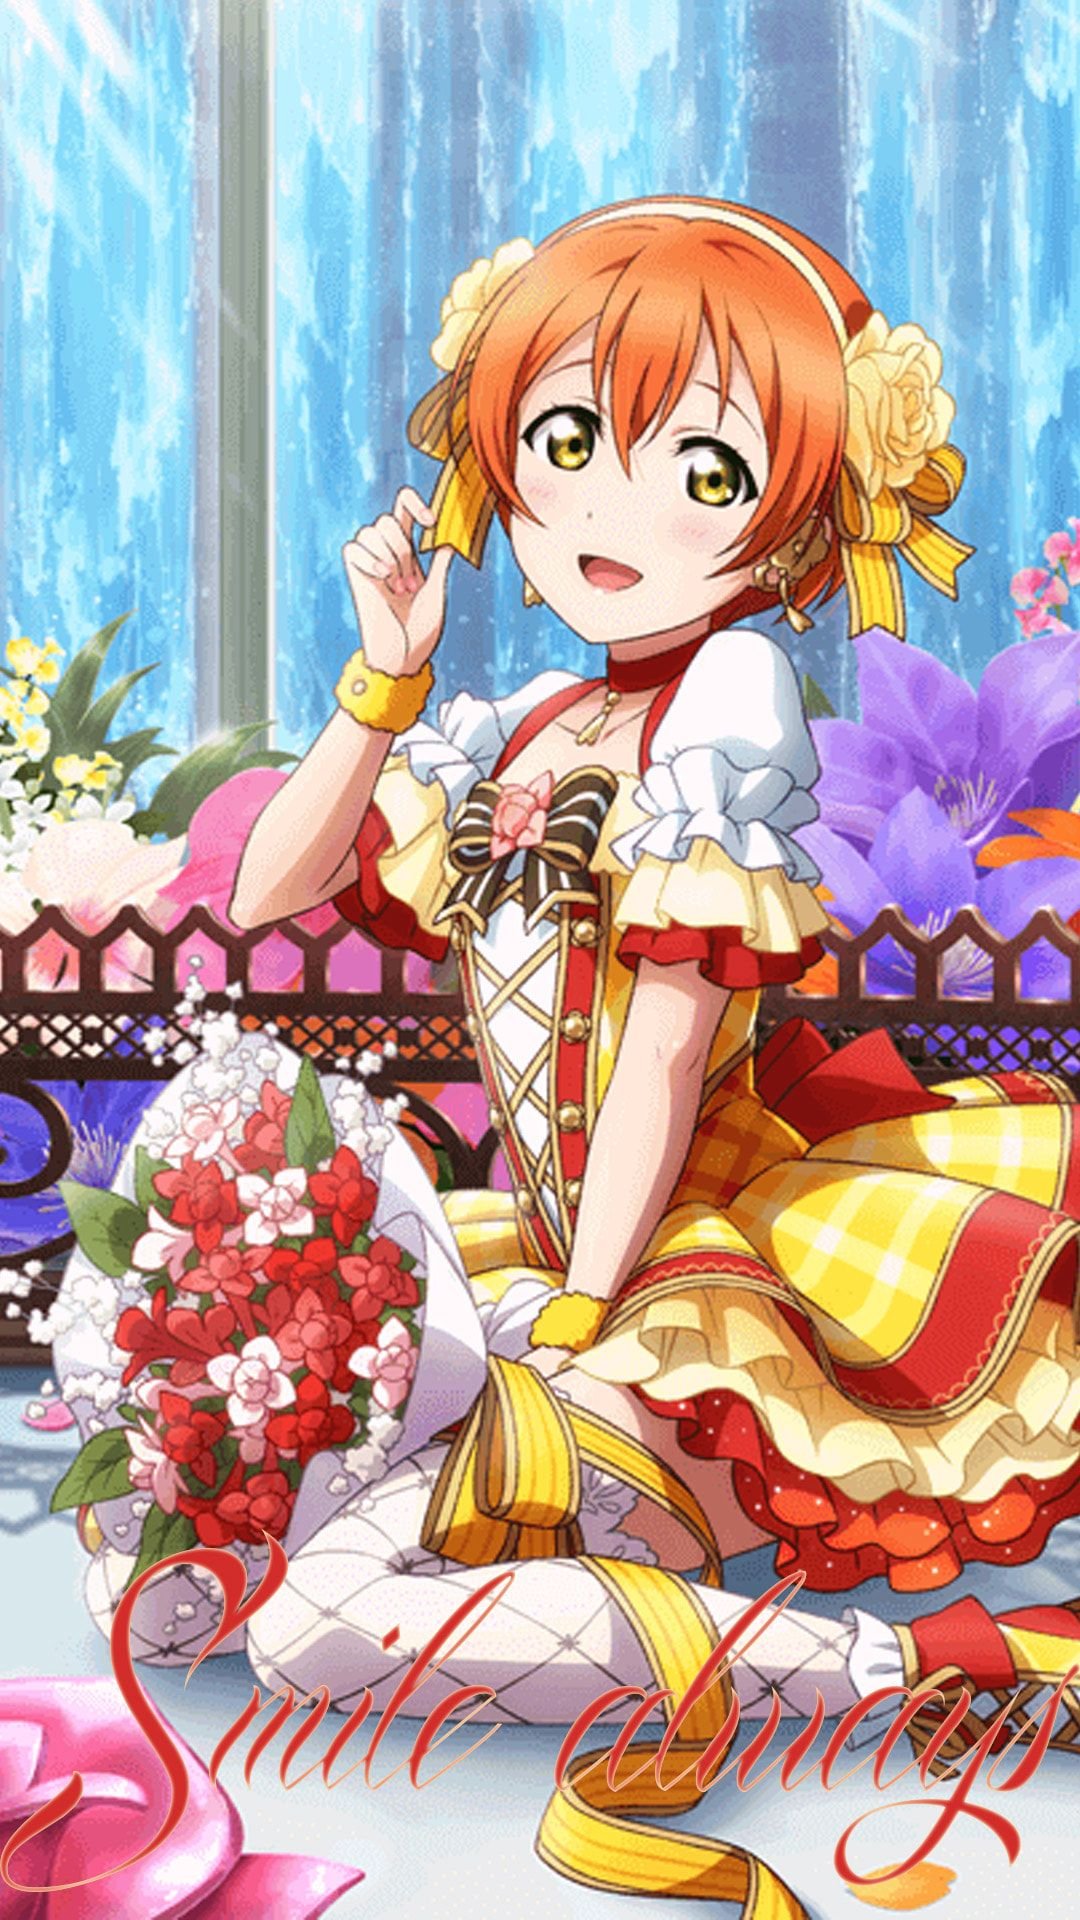 A page for Love Live! School Idol Project Muse wallpapers